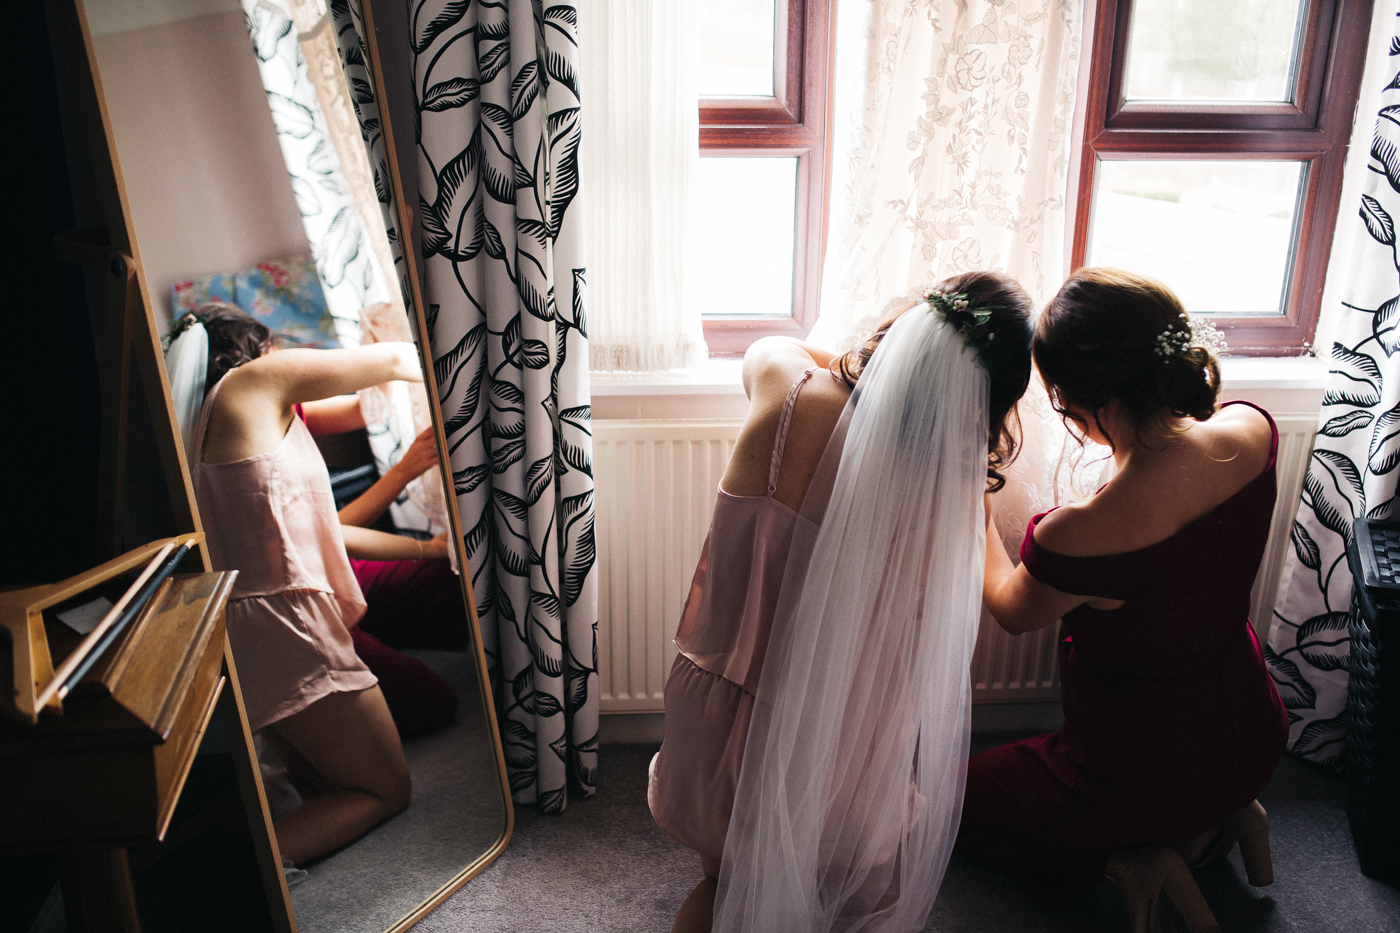 bride and bridesmaid fix the wedding dress before putting it on. ceremony at st georges hall liverpool, oh me oh my wedding reception, north west wedding photographer